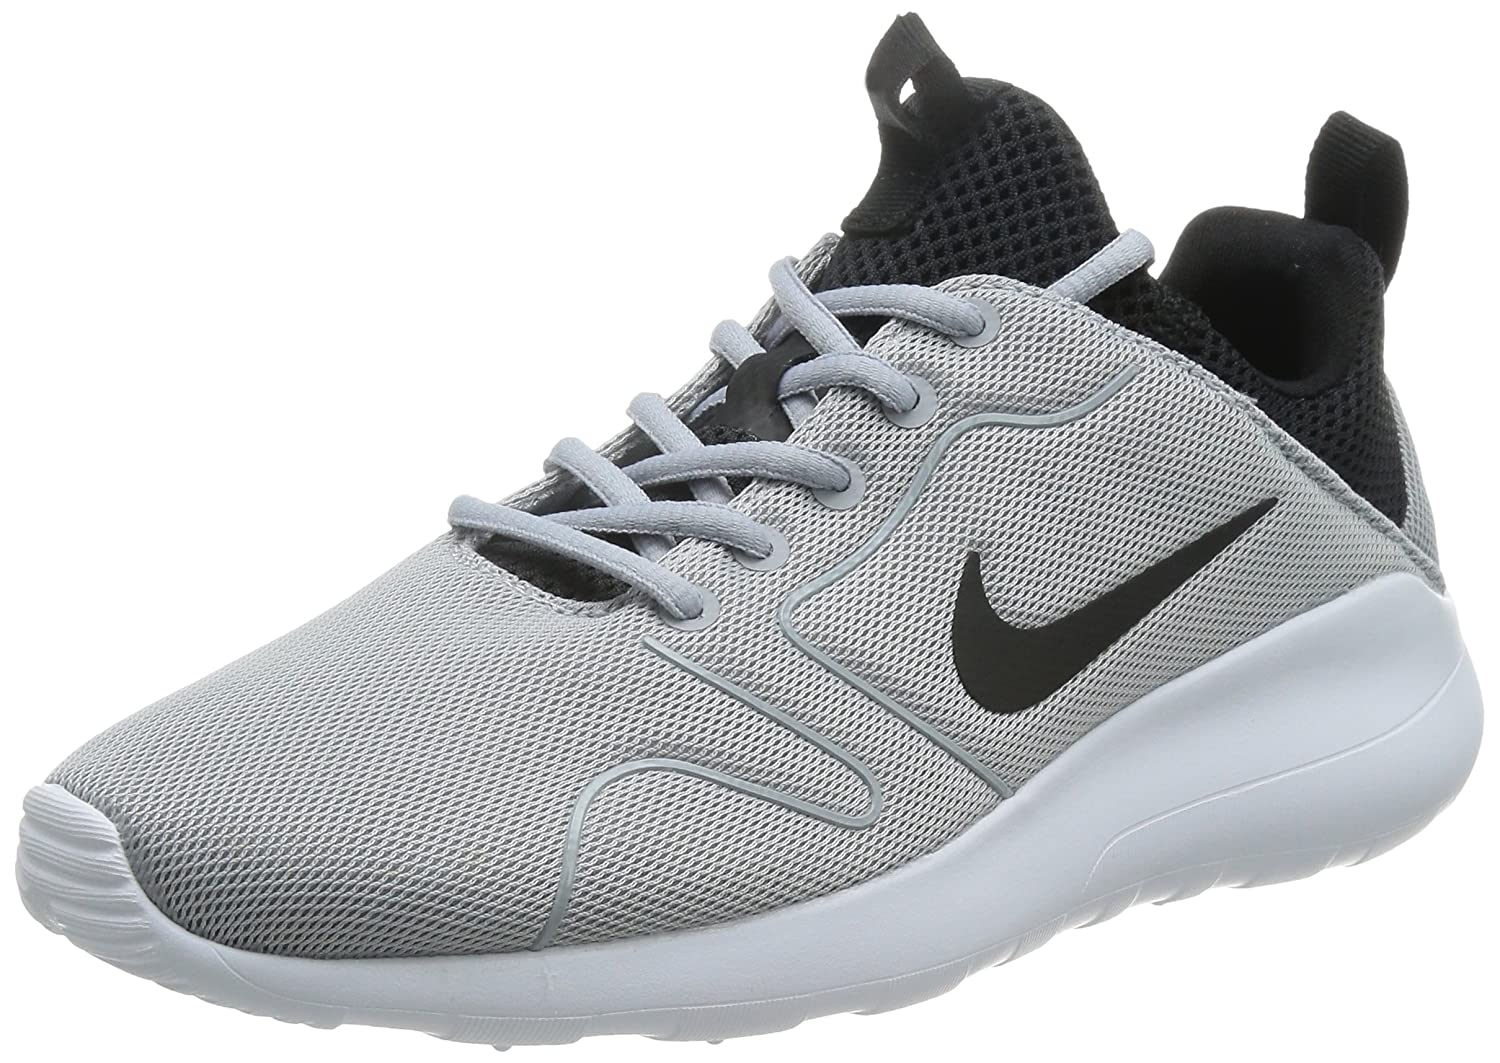 833411-001 - chaussures nike kaishi | 2.0 | | hommes hommes | | kaishi chaussures chaussures ed2a63